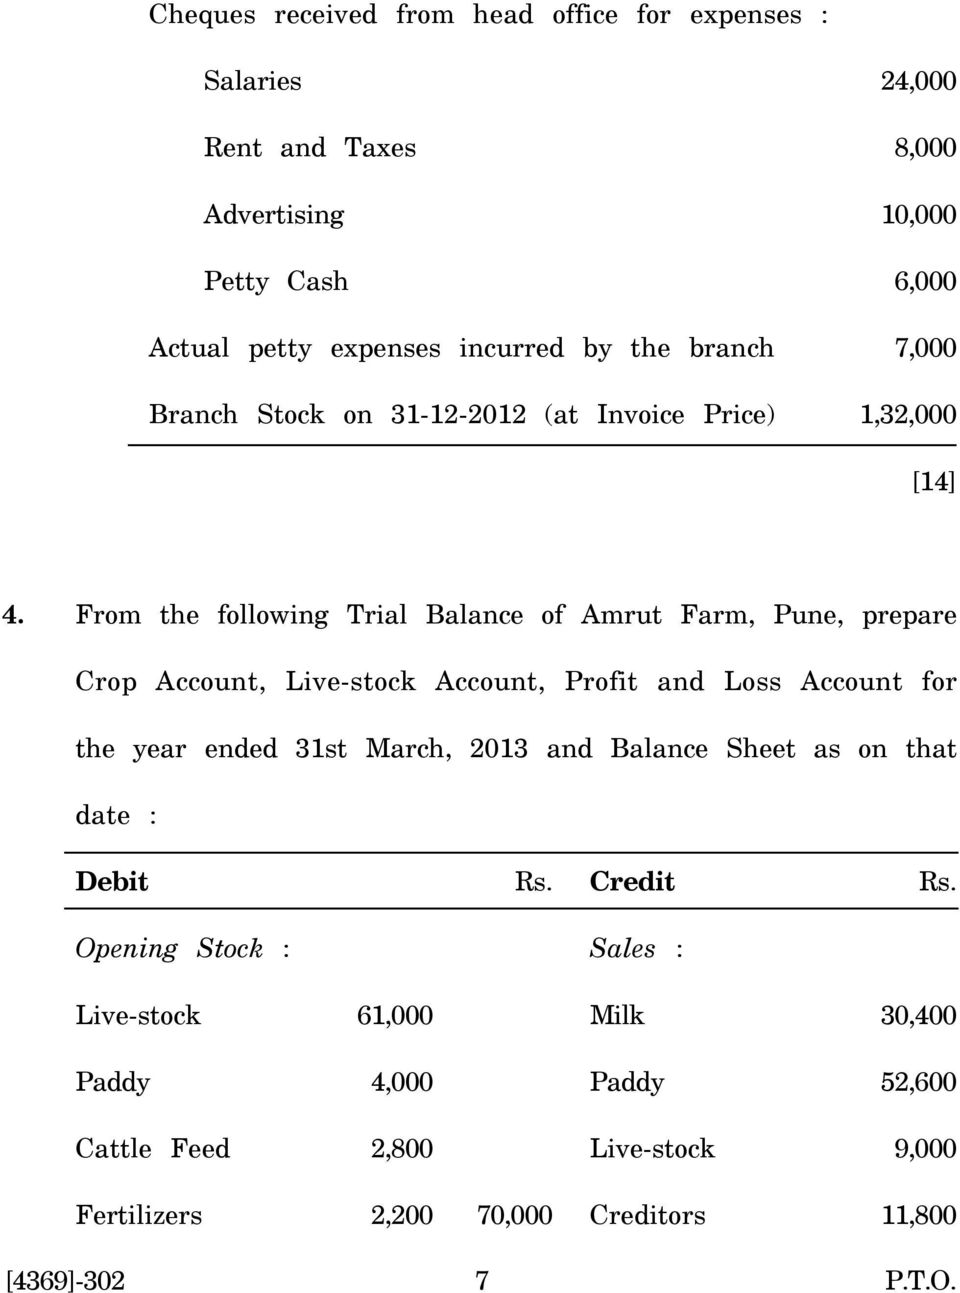 From the following Trial Balance of Amrut Farm, Pune, prepare Crop Account, Live-stock Account, Profit and Loss Account for the year ended 31st March, 2013